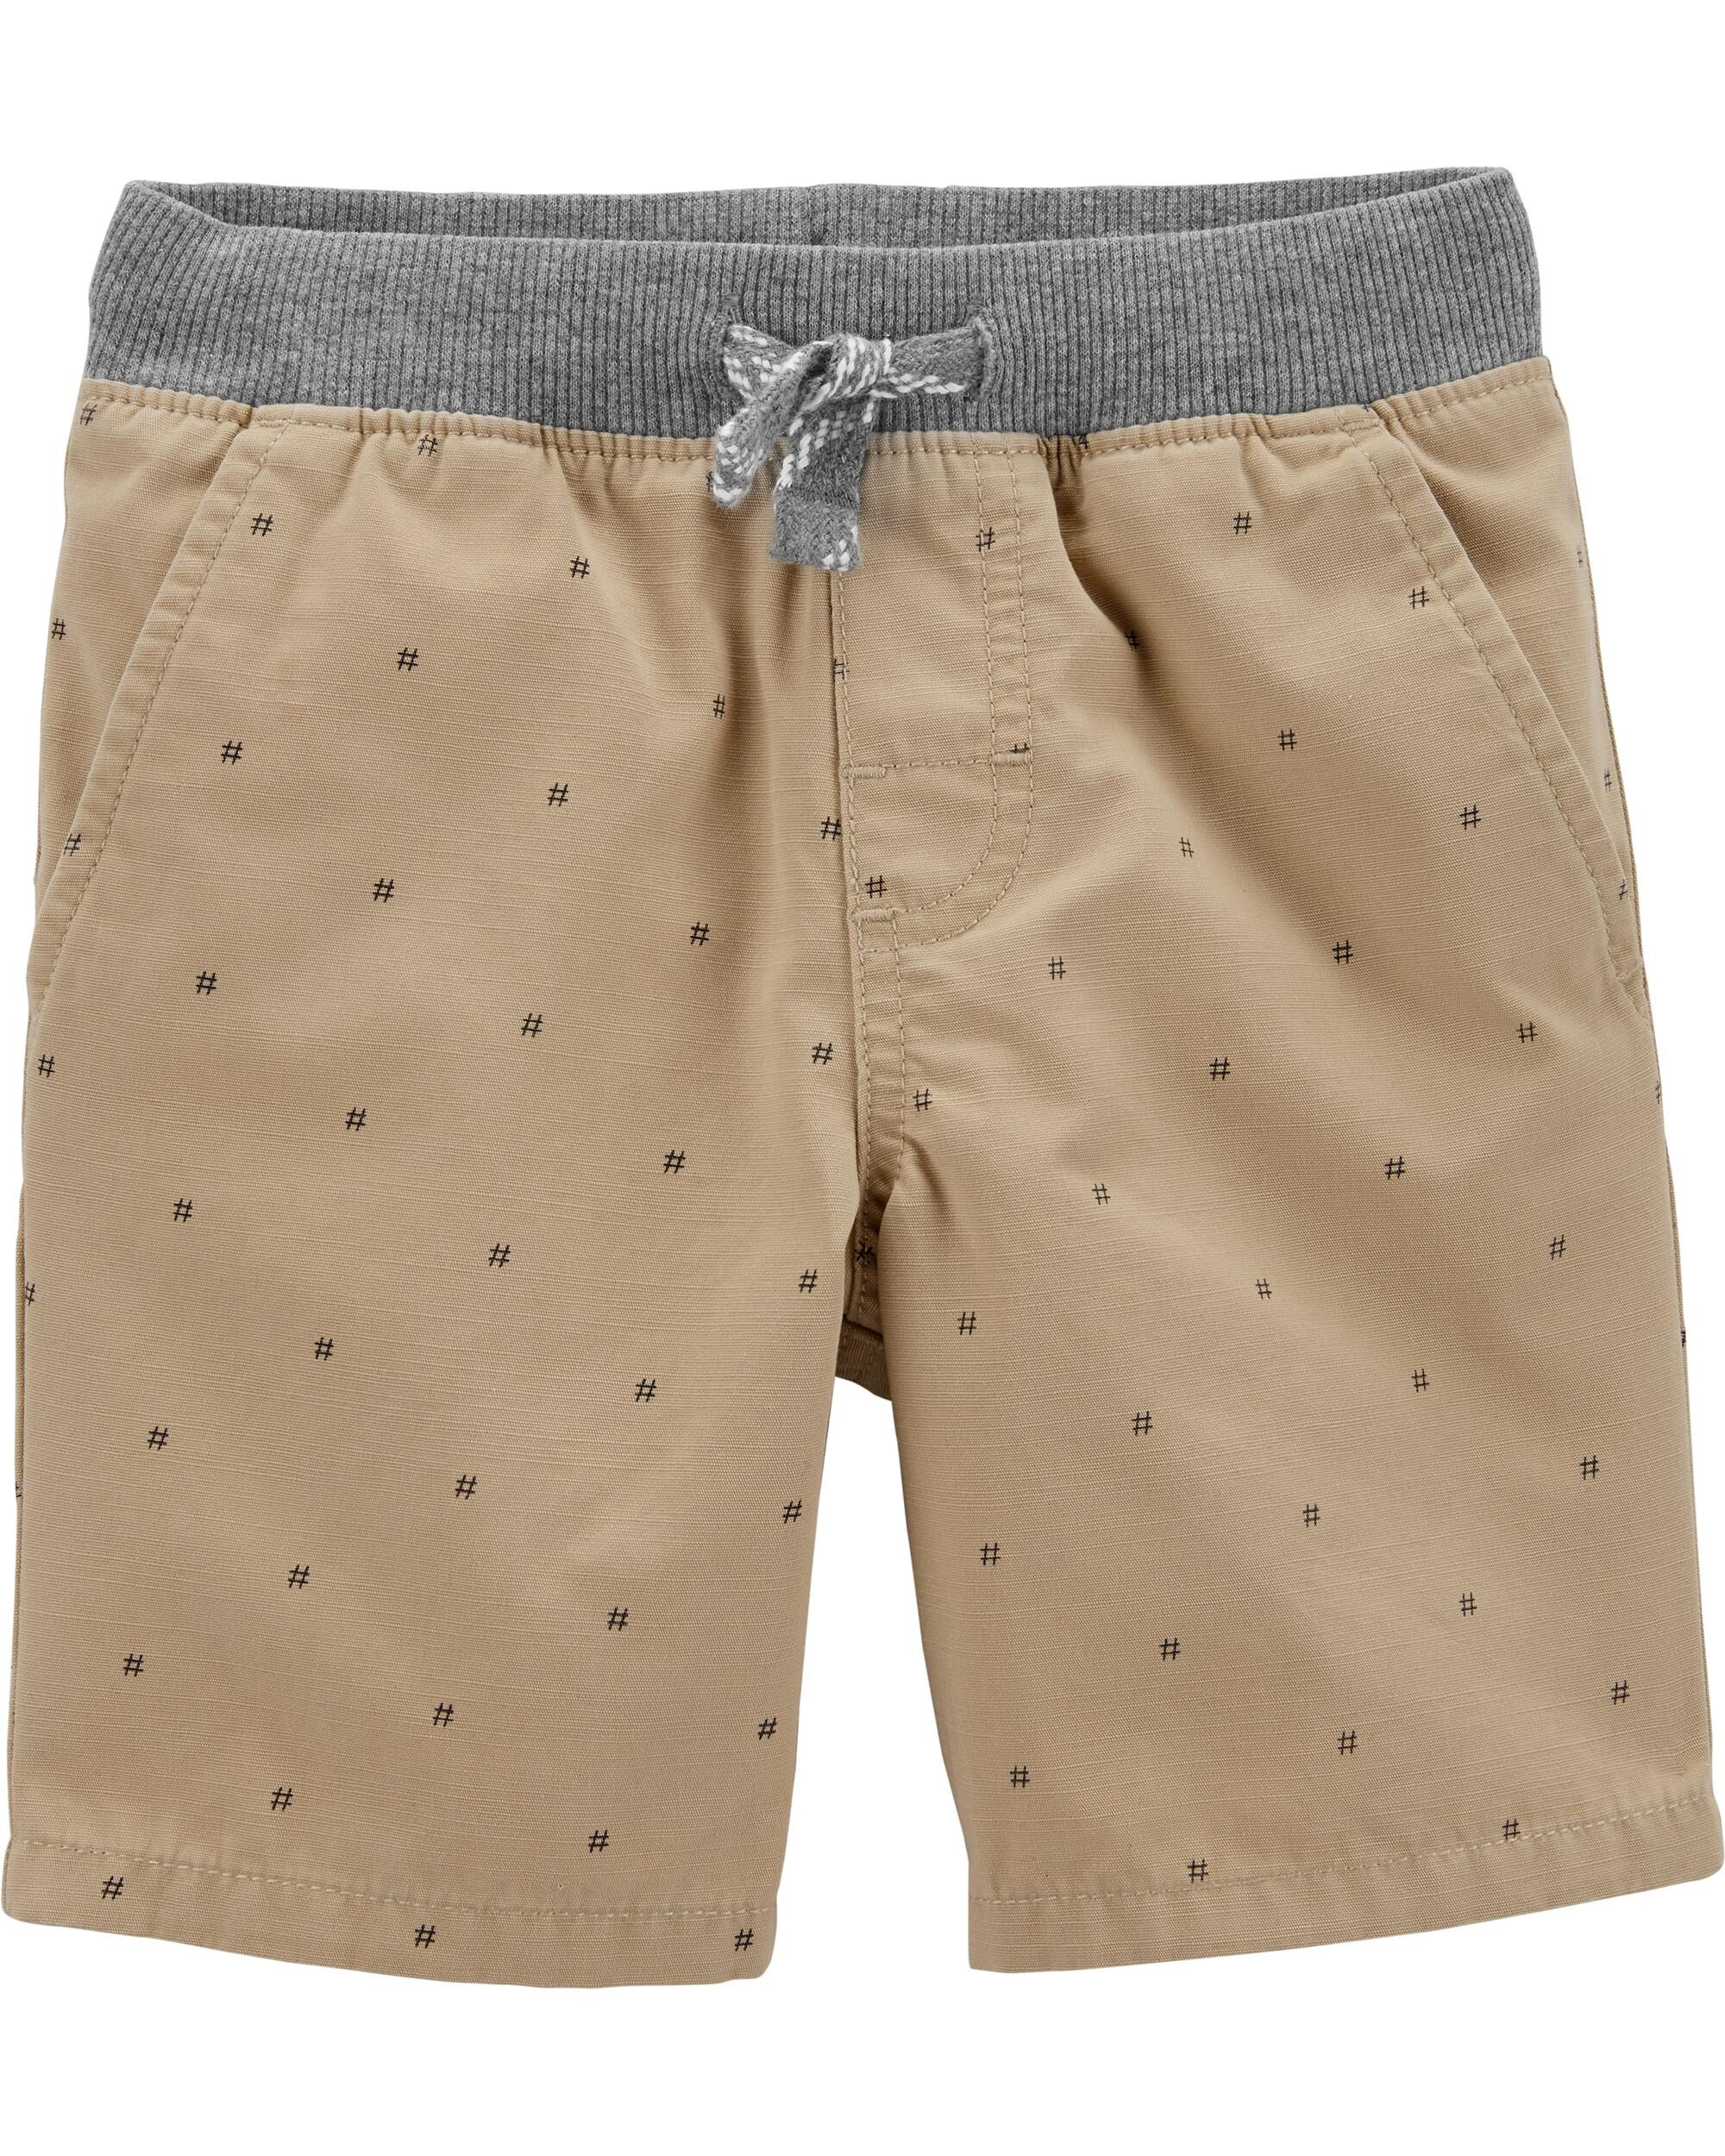 *Clearance*  Hashtag Easy Pull-On Dock Shorts